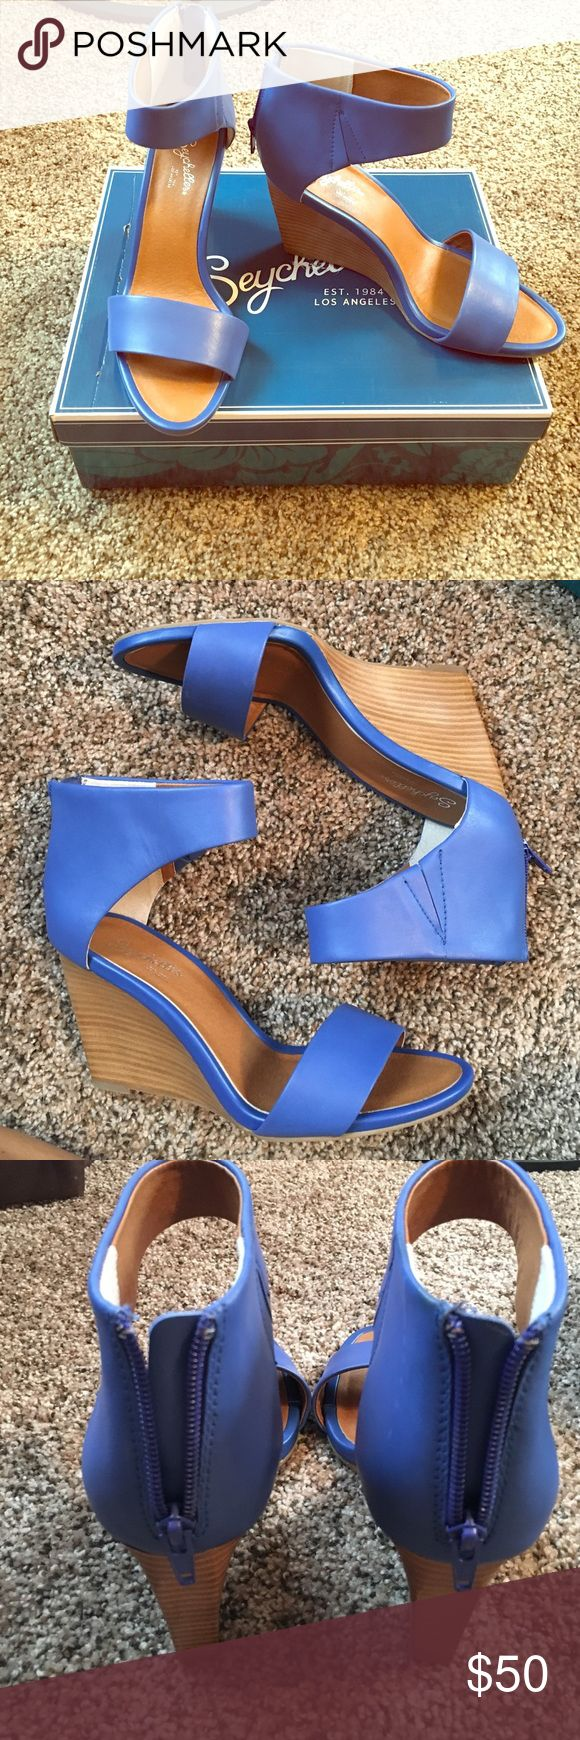 ROYAL BLUE ankle strap wedges SEYCHELLES brand. A beautiful royal blue. NEVER WORN. They do run probably a half size bigger. Box included. Seychelles Shoes Wedges